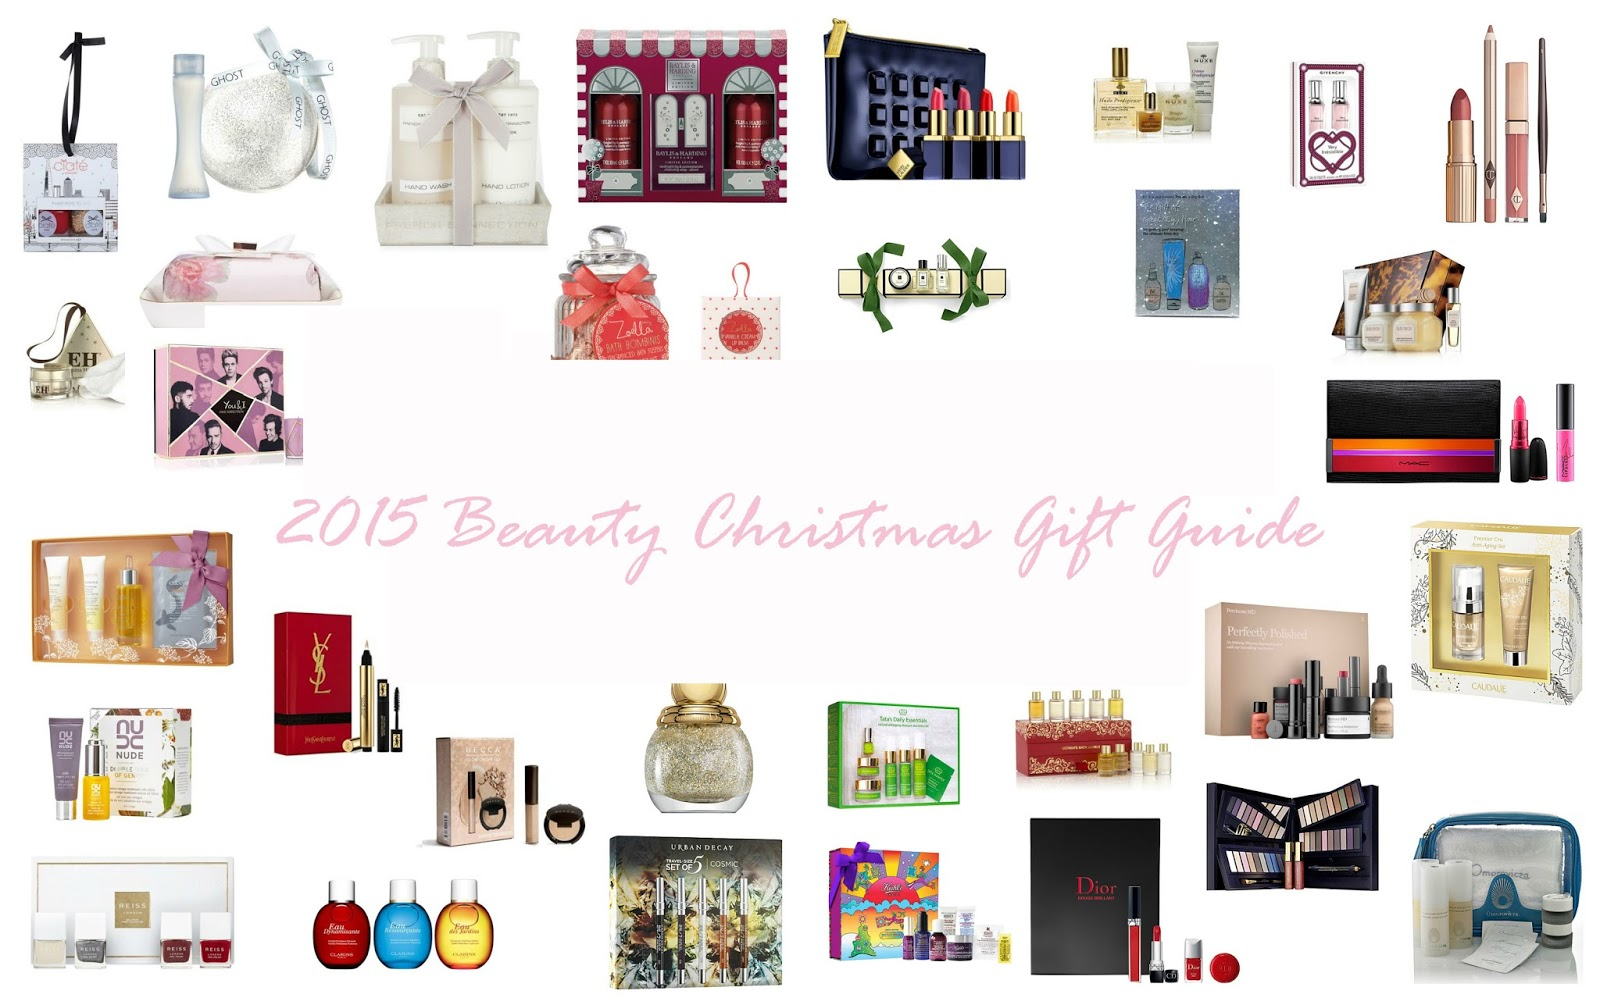 2015 Beauty Christmas Gift Guide